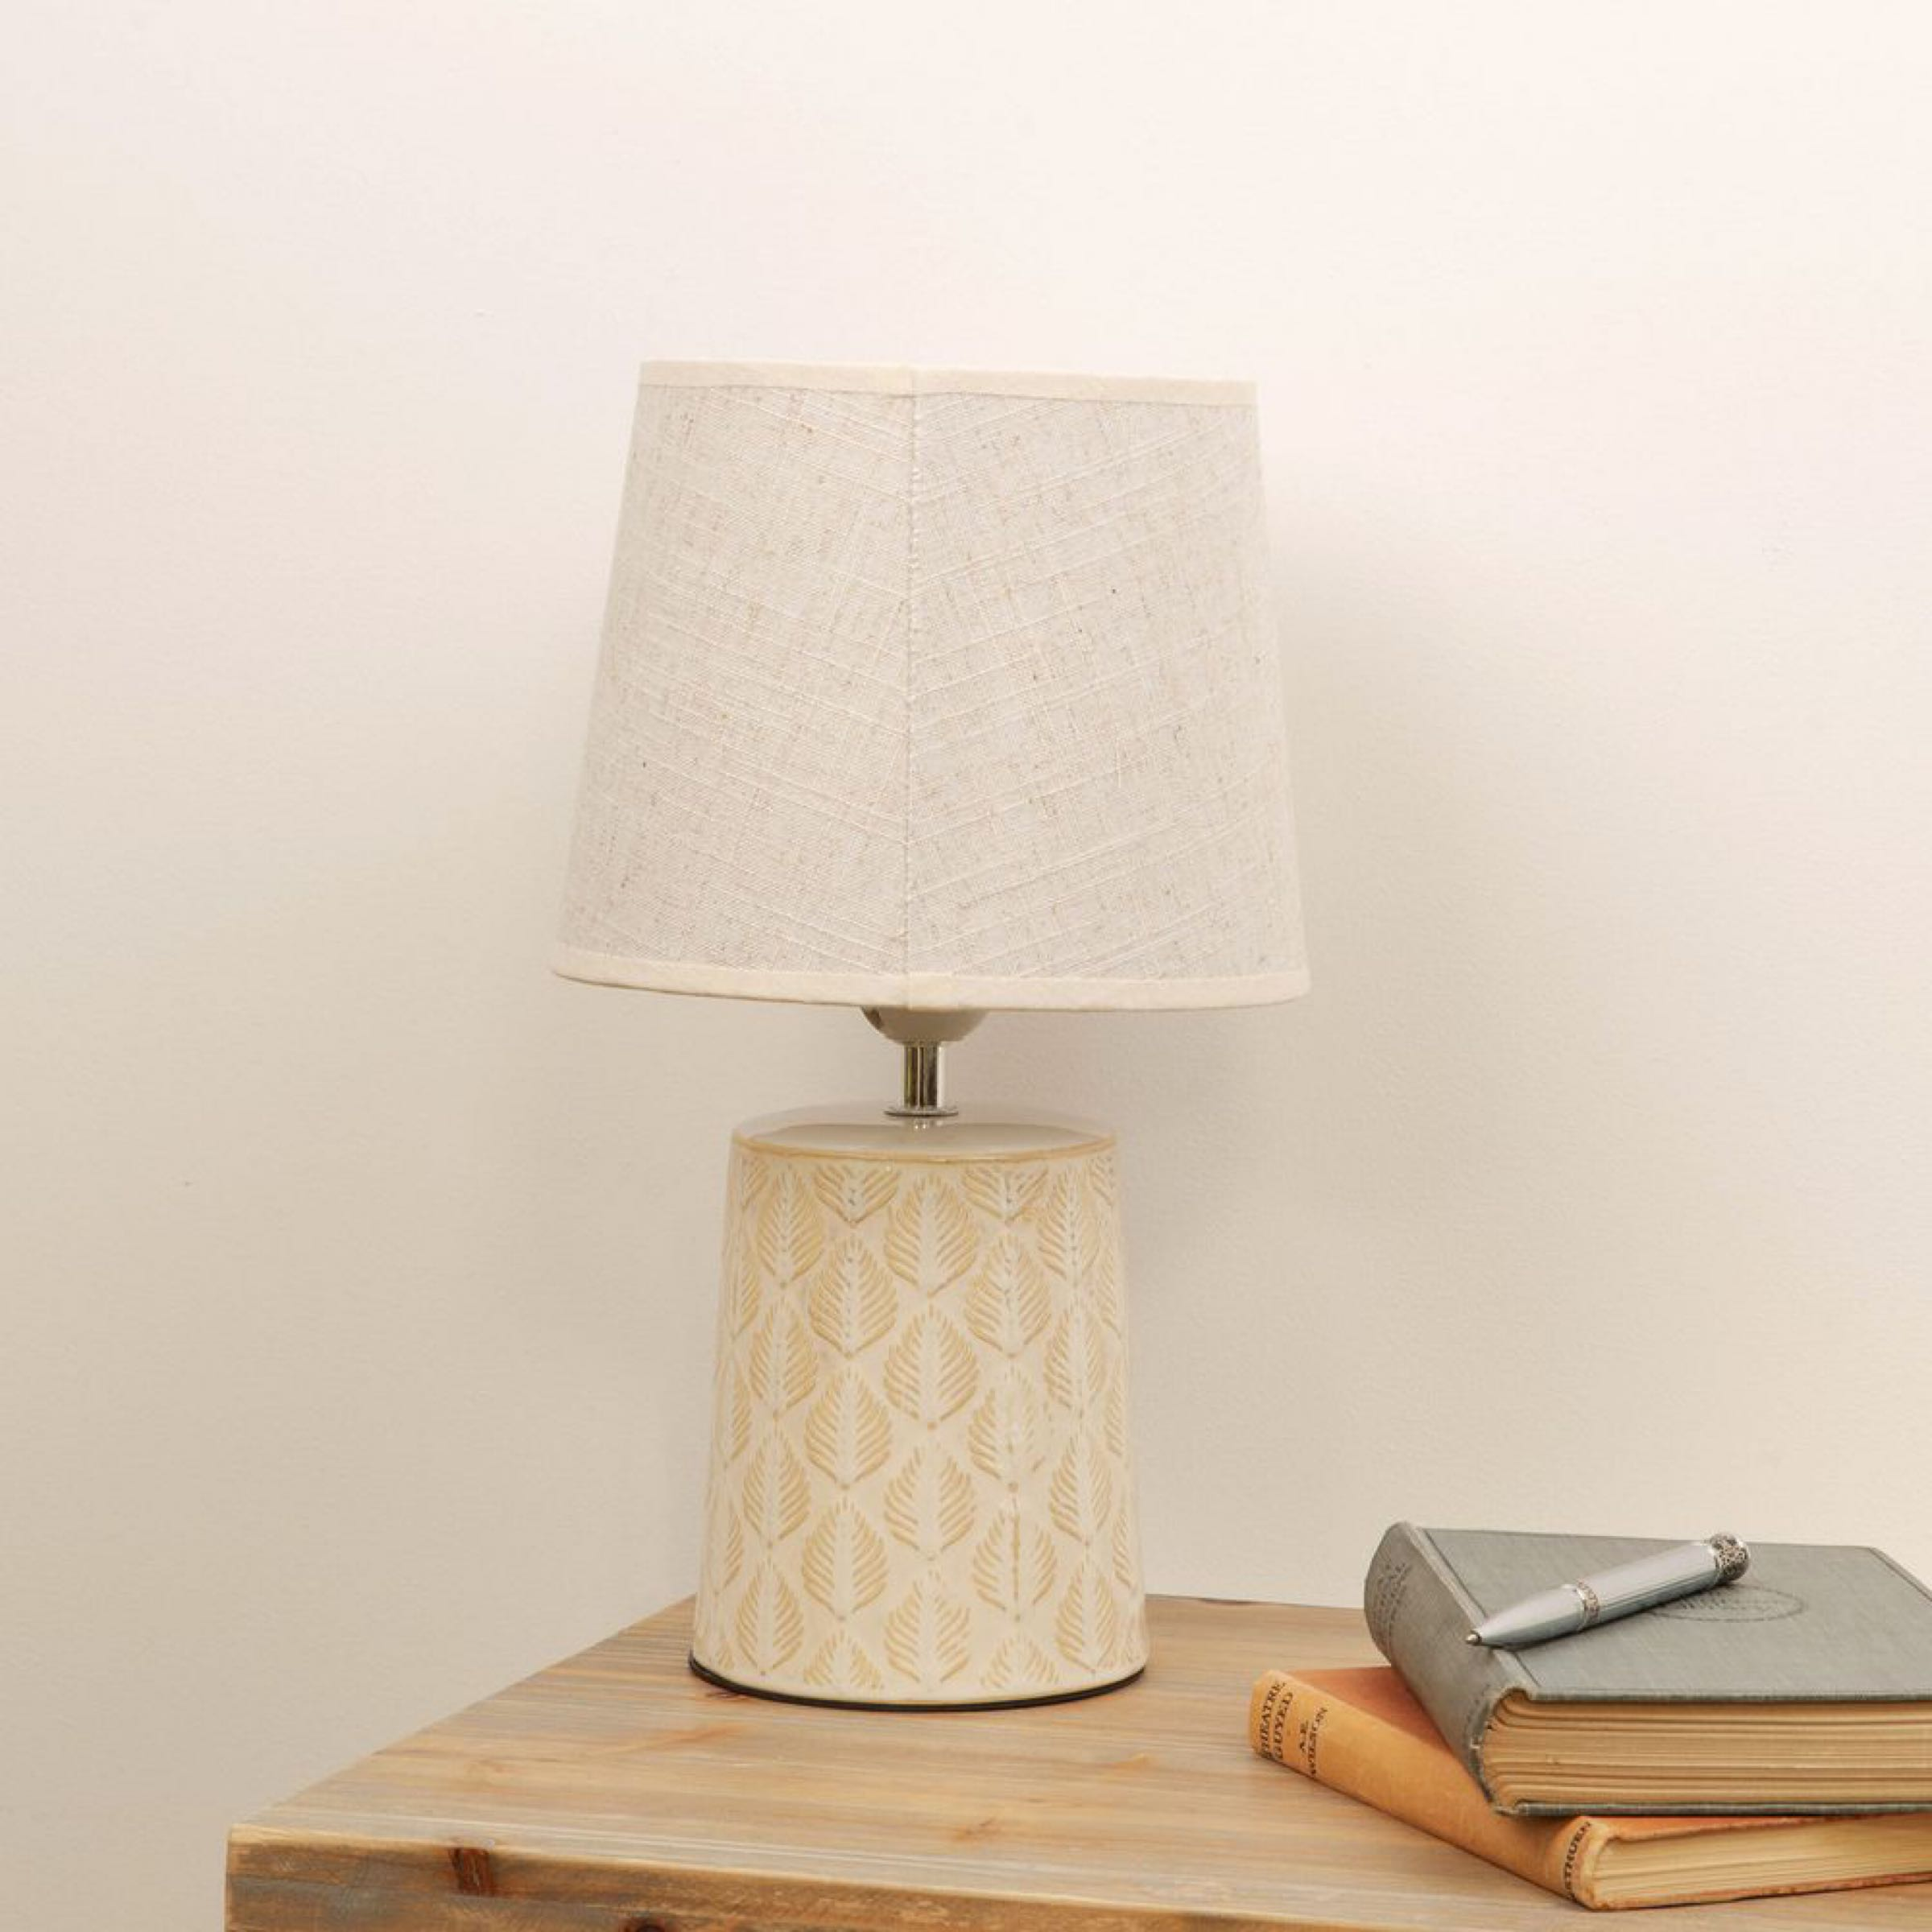 Leaf Print Table Lamp with Beige Linen Shade